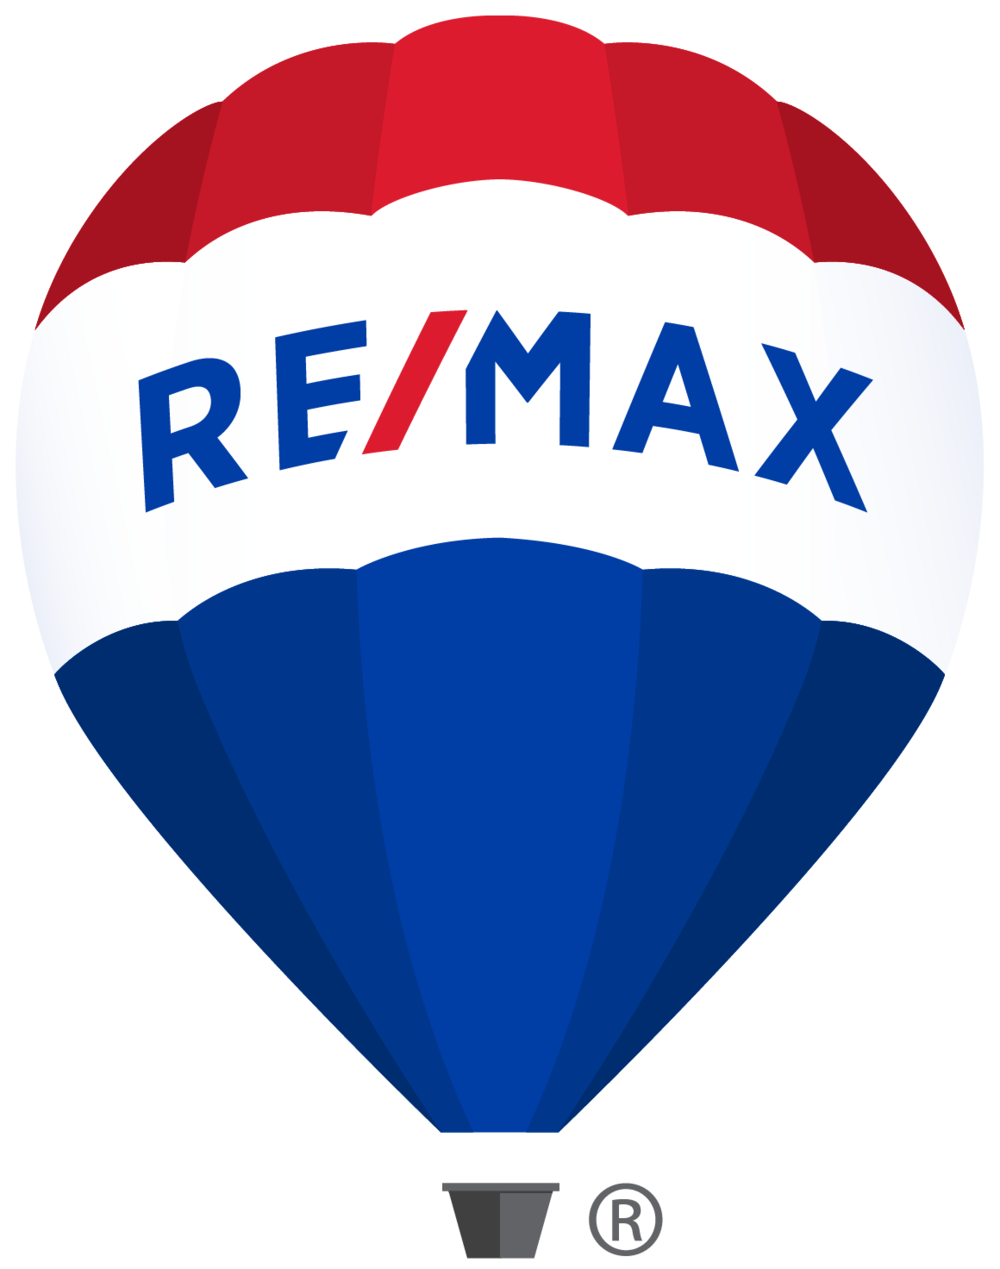 remax-home-to-hard-working-agents.png